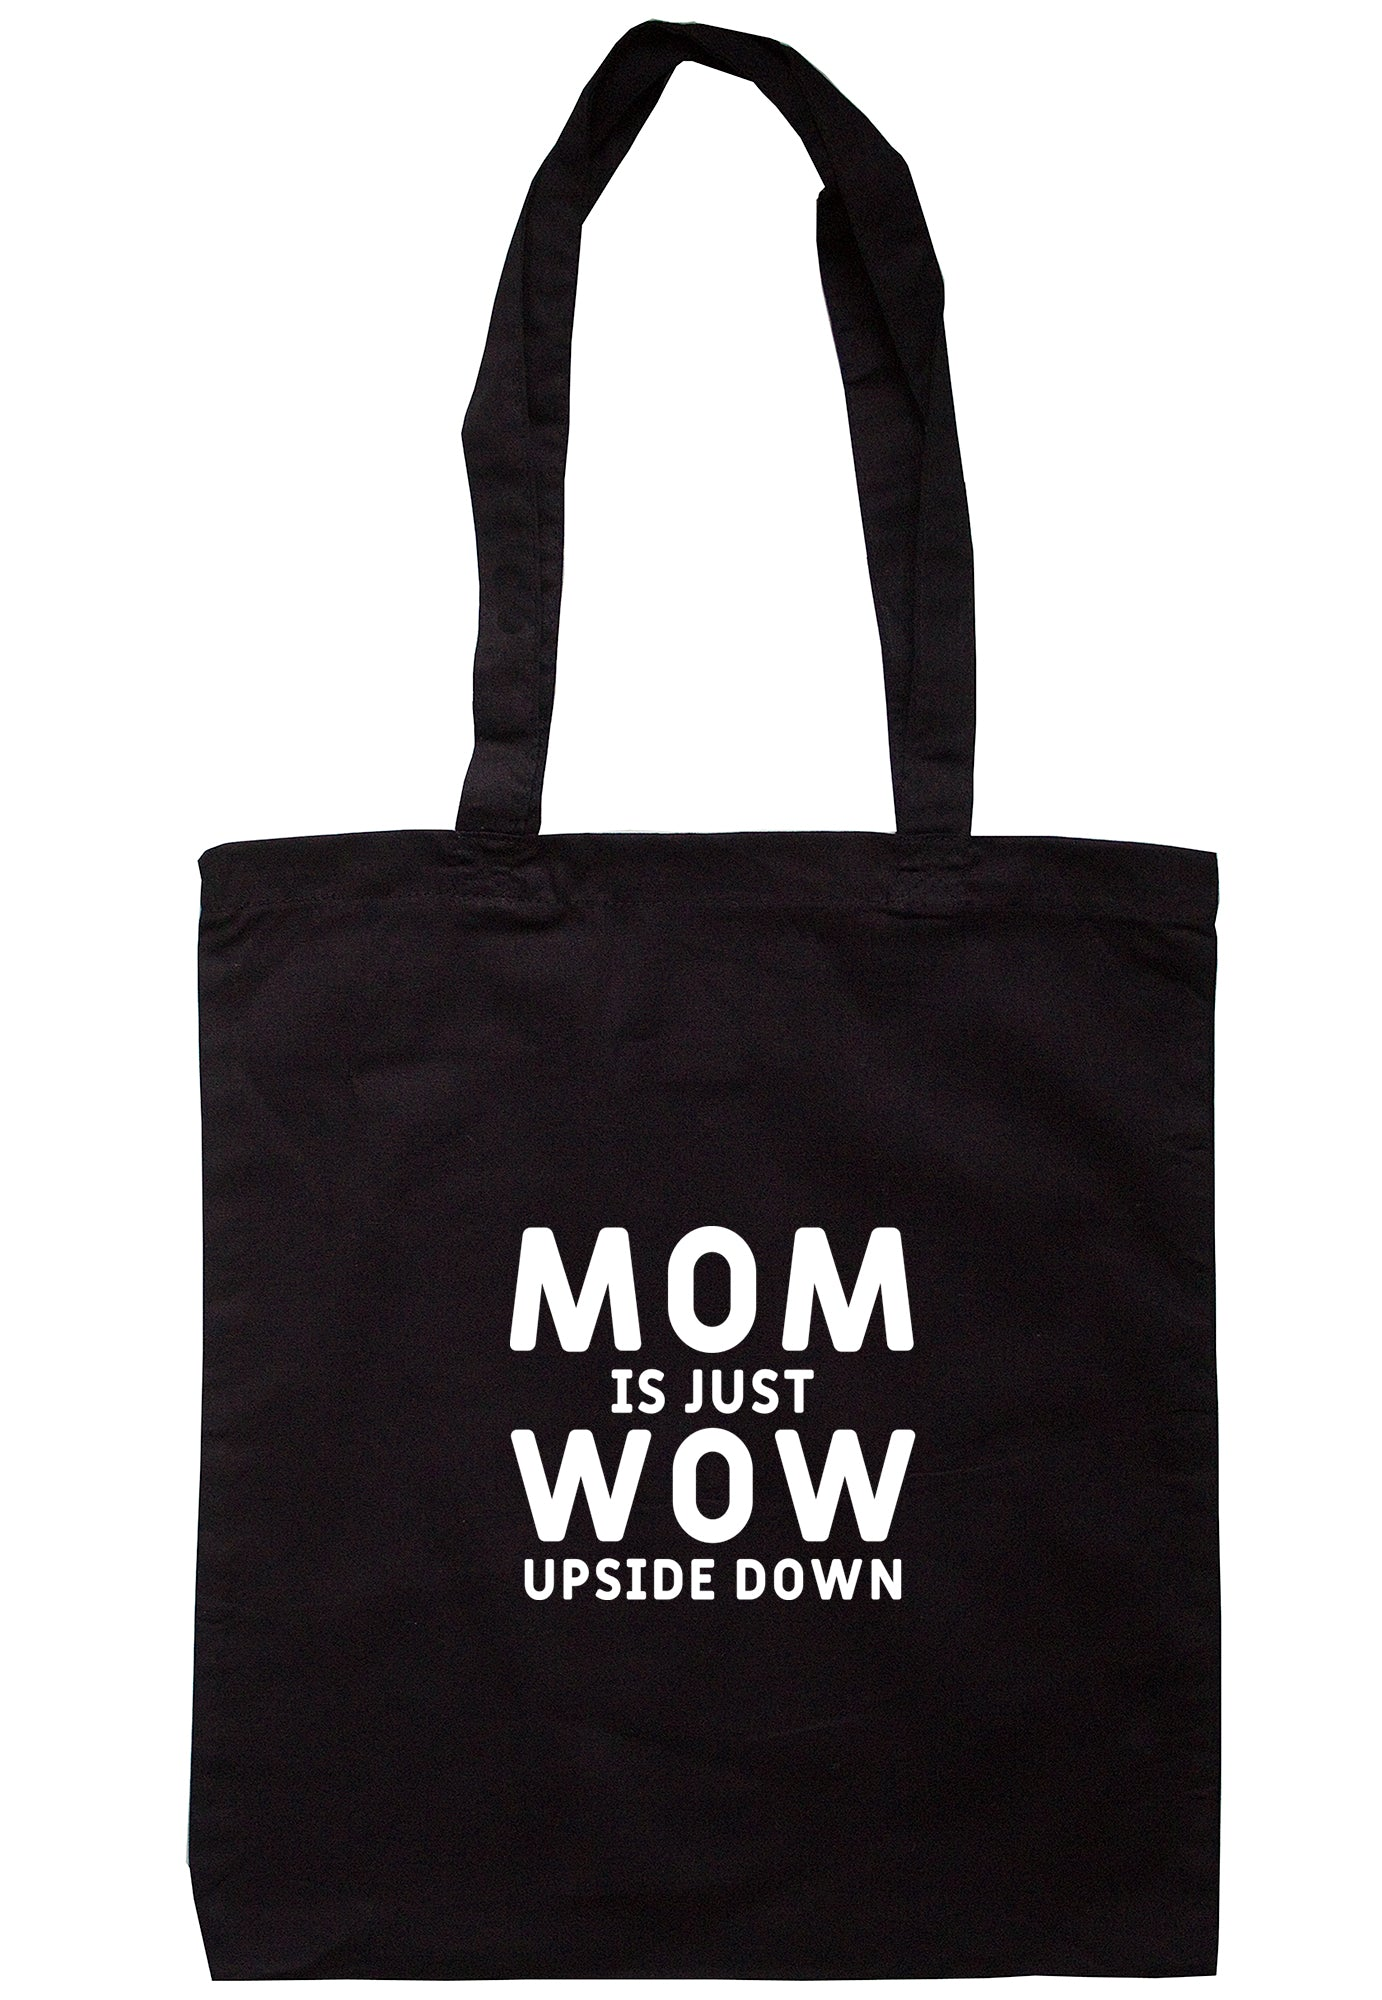 Mom Is Just Wow Upside Down Tote Bag S1094 - Illustrated Identity Ltd.